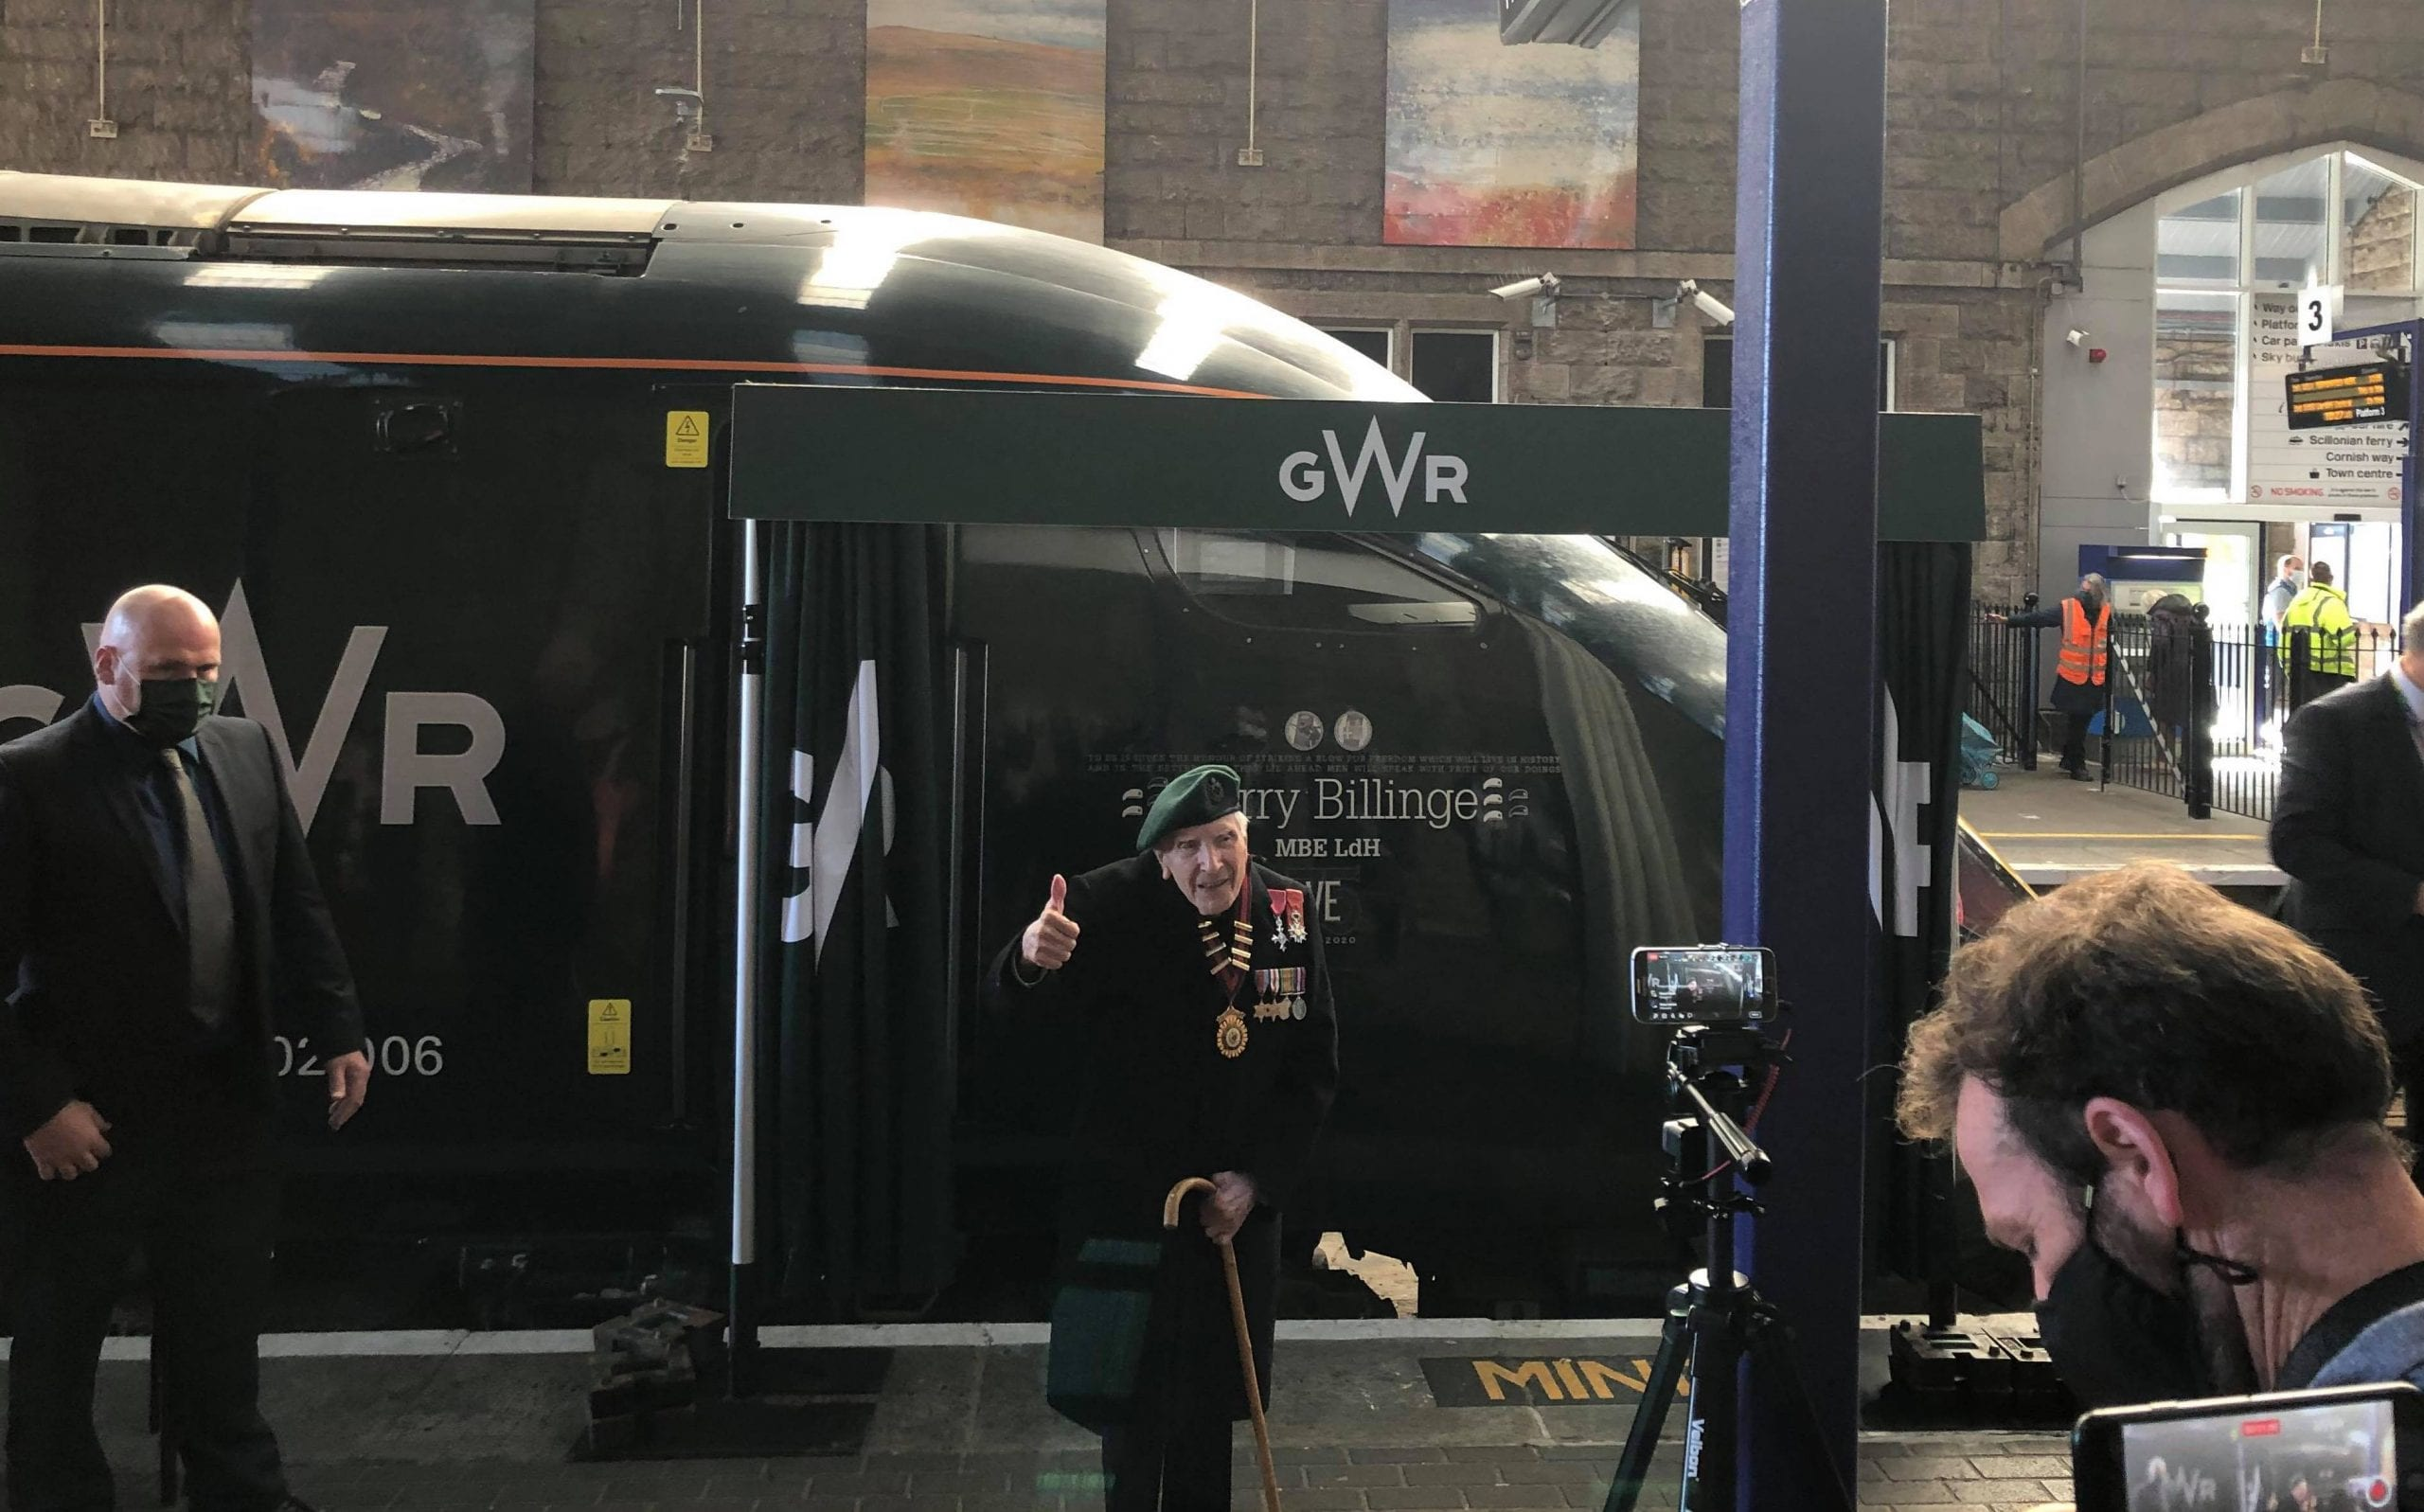 Harry billinge and his named train